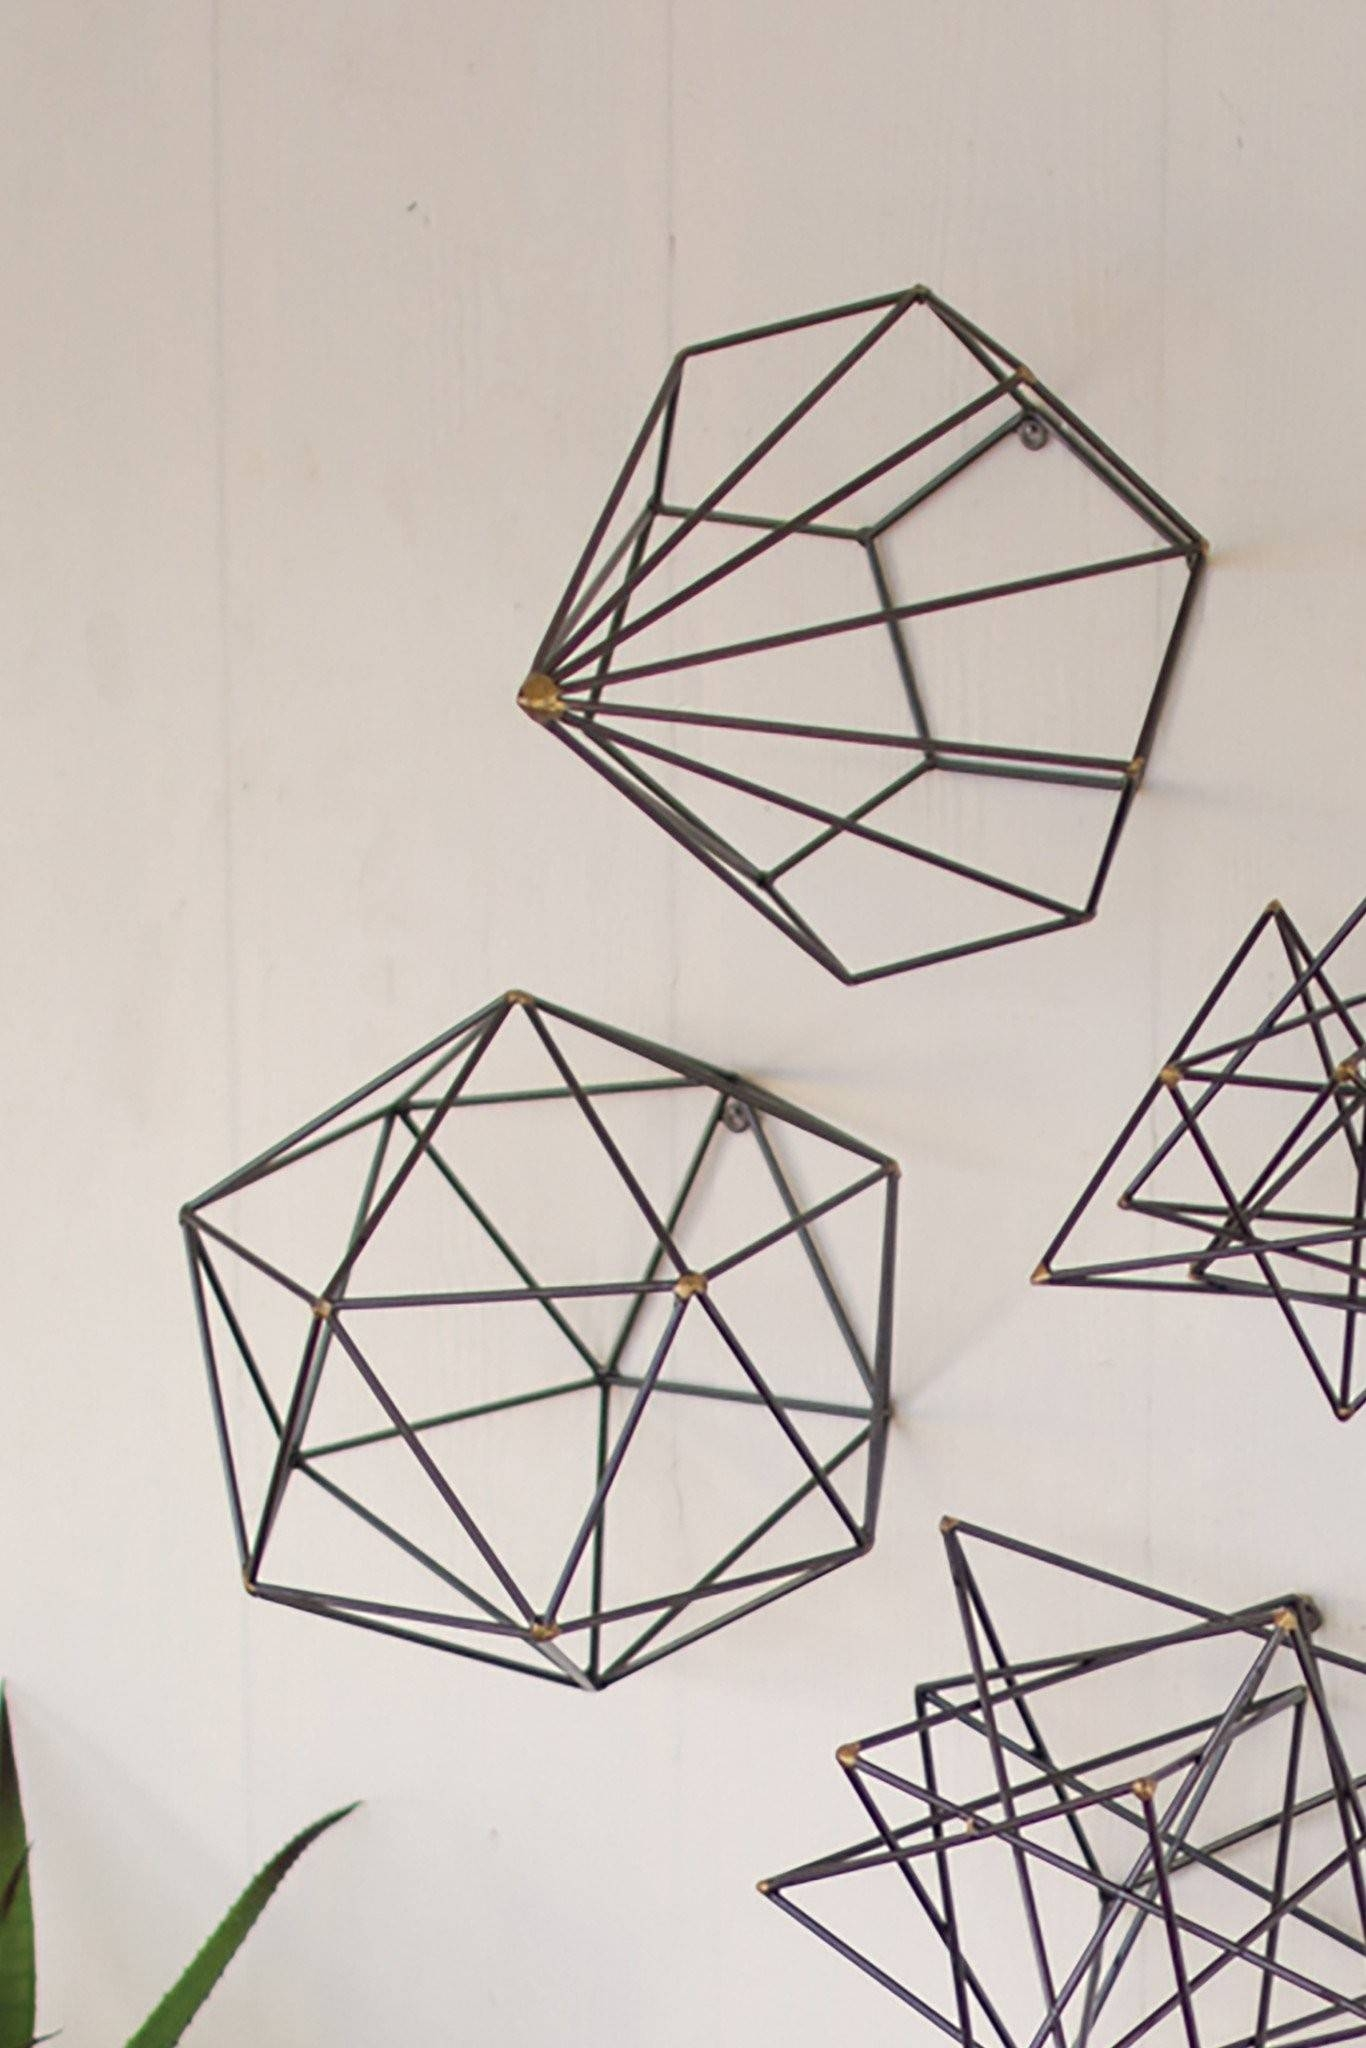 Geometric Metal Wall Art | Nana's Workshop Pertaining To Best And Newest Geometric Metal Wall Art (Gallery 2 of 20)